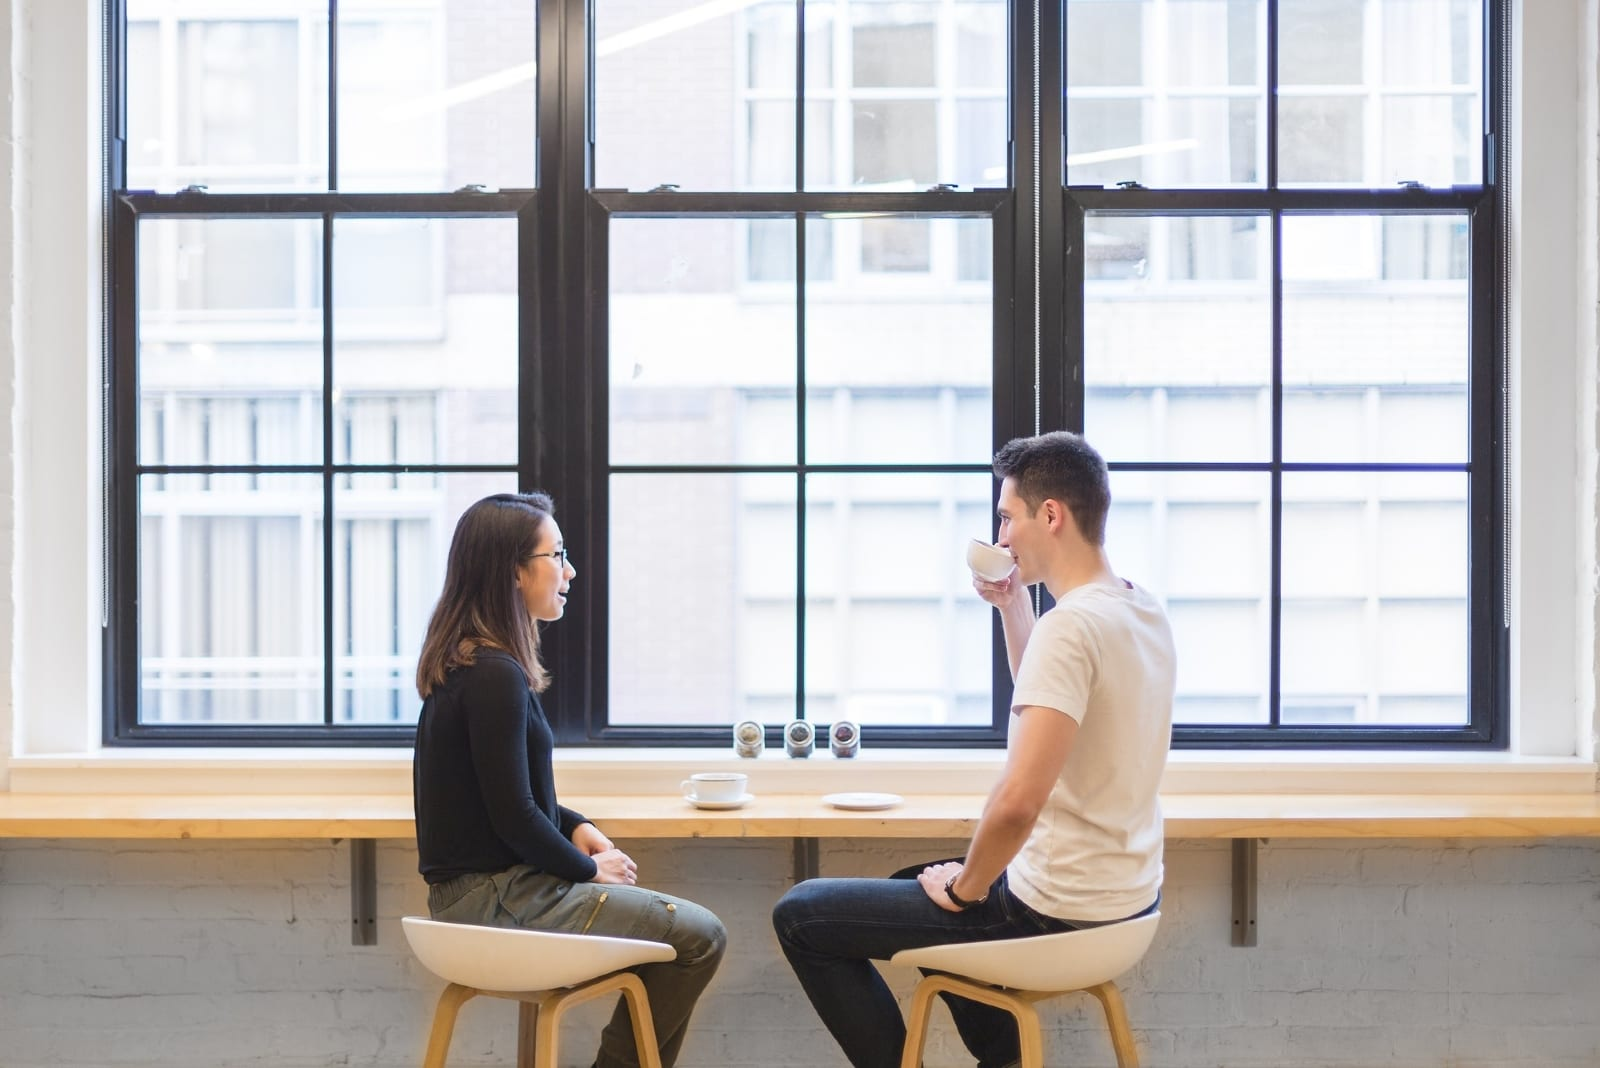 man and woman talking while sitting at table